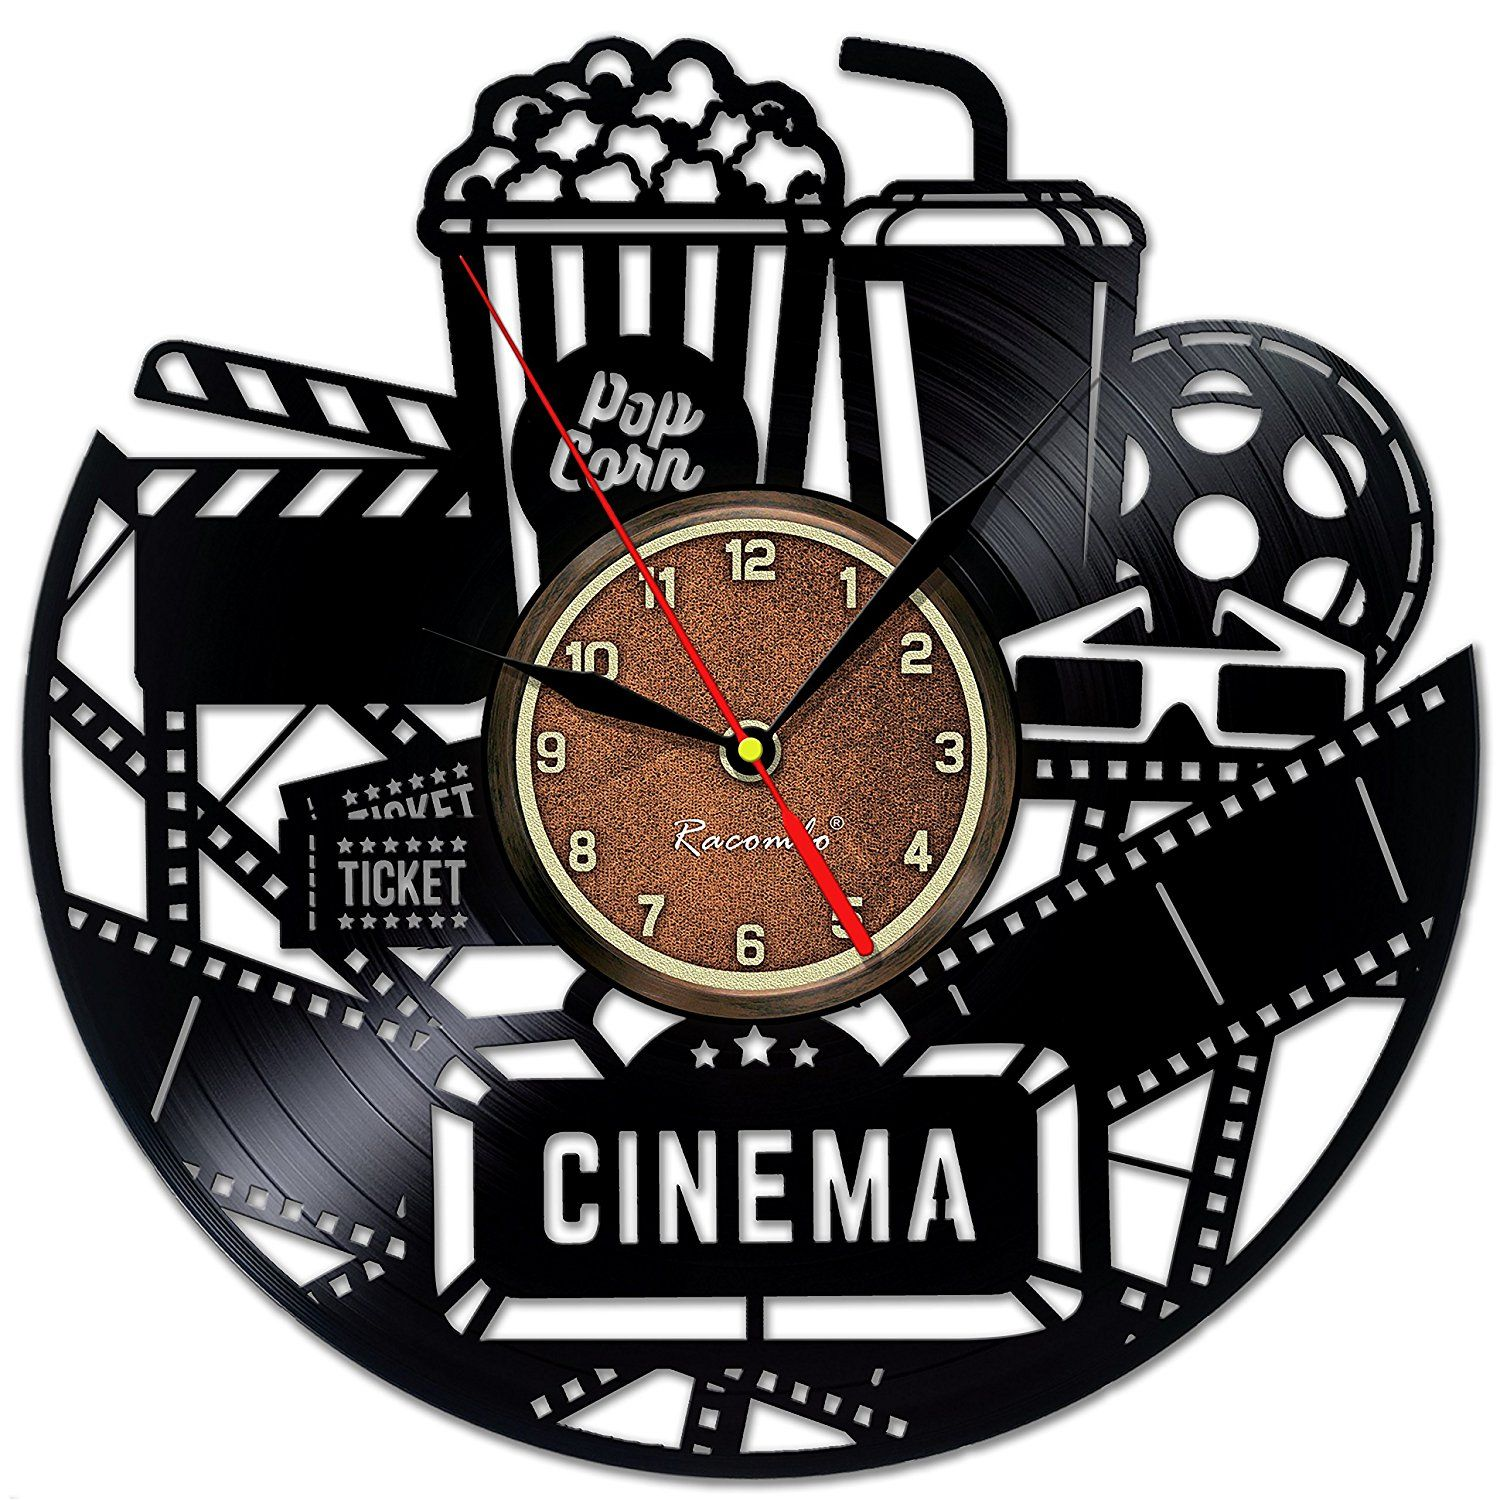 Cinema and Popcorn Vinyl Record Clock - Game Room Wall Decor by ...